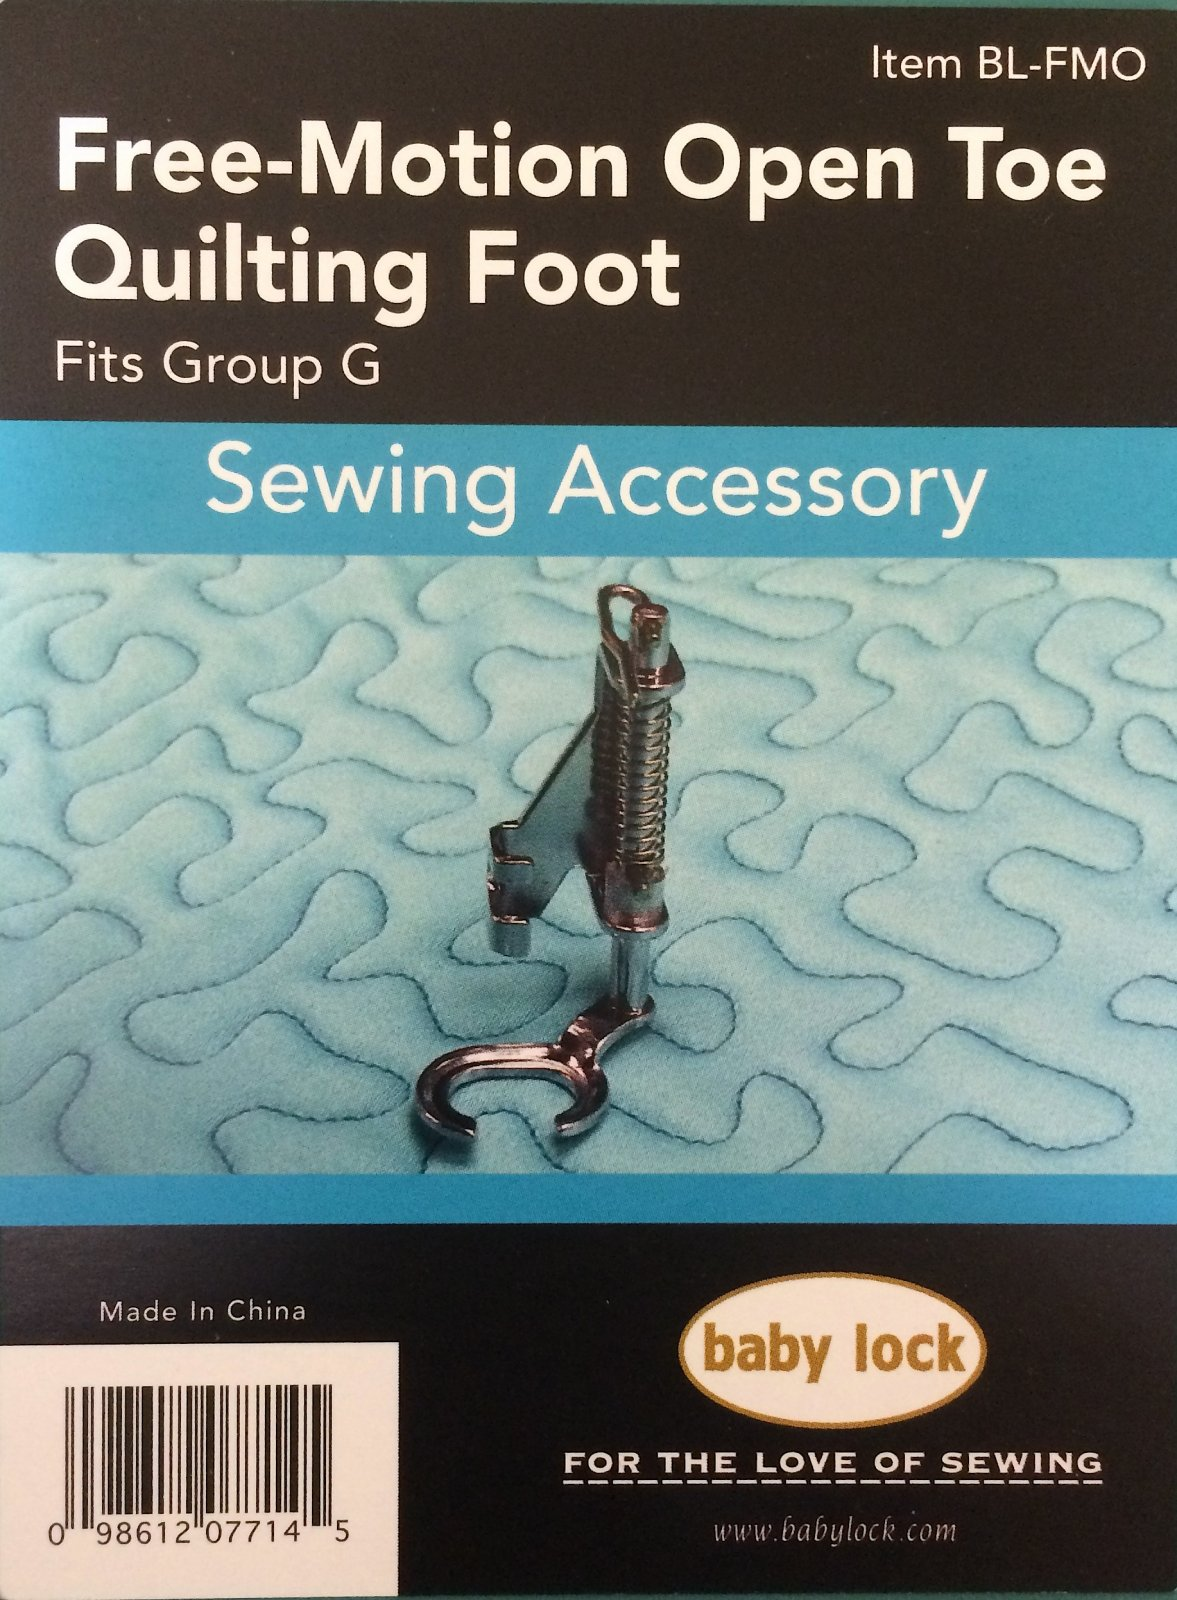 Free Motion Open Toe Quilting Foot